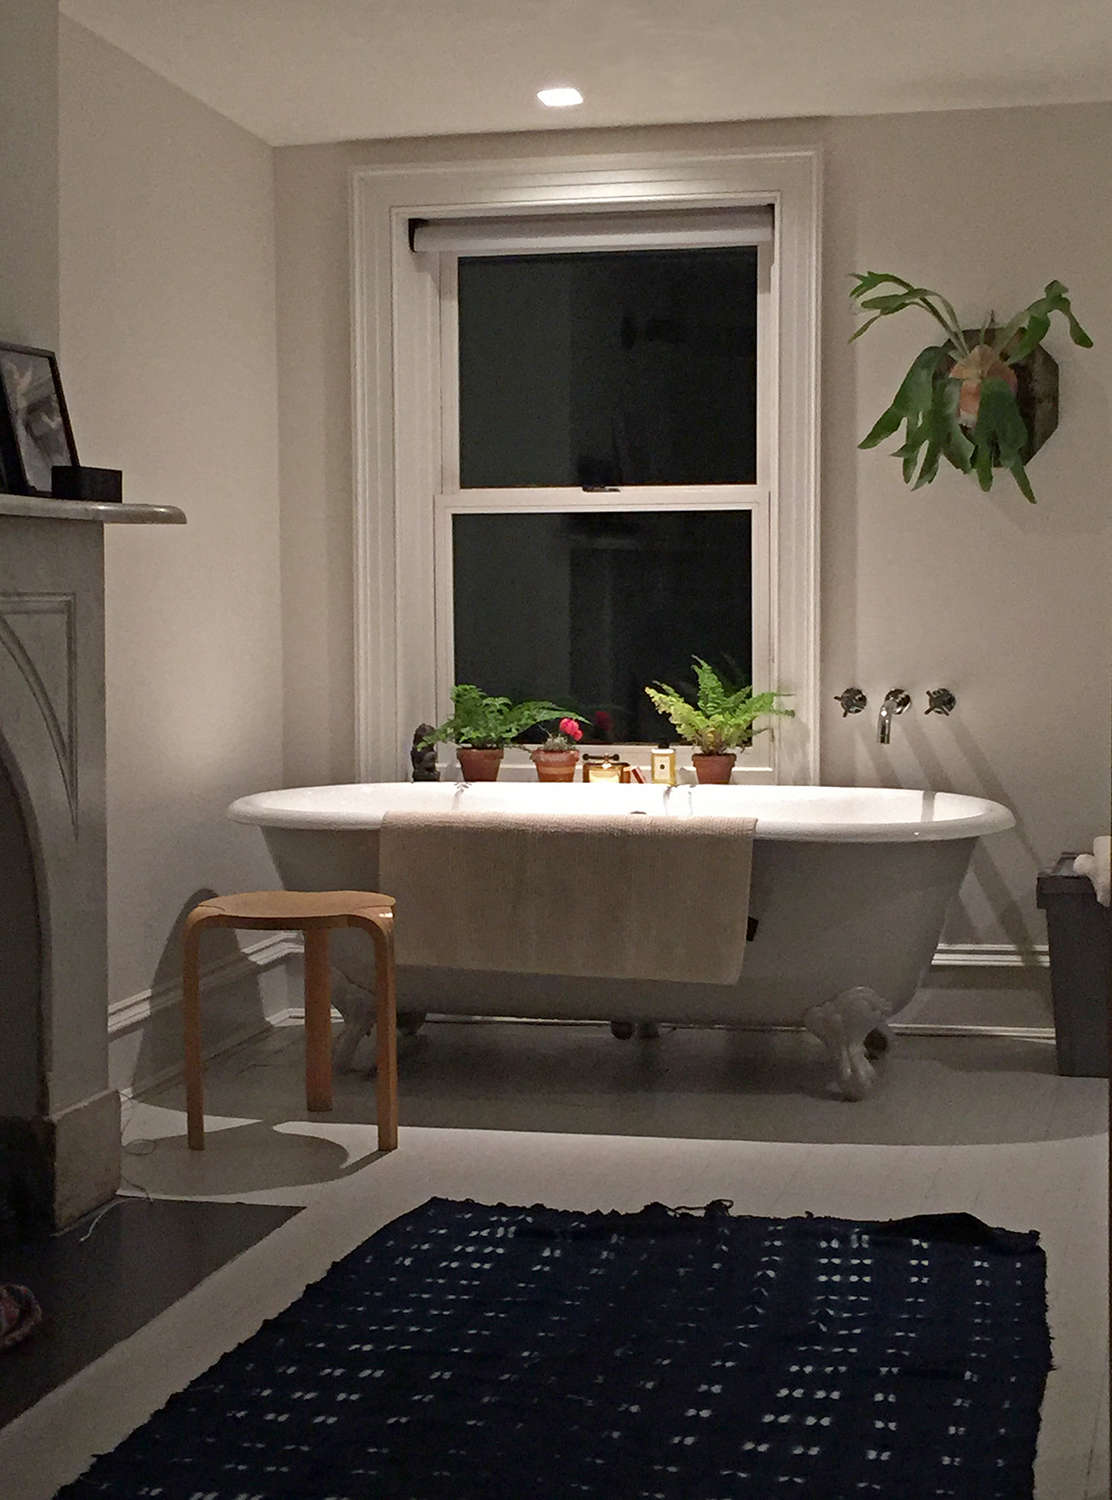 Do Try This At Homeu2014in Freundlichu0027s Own Newly Remodeled Brooklyn Bathroom,  He Used